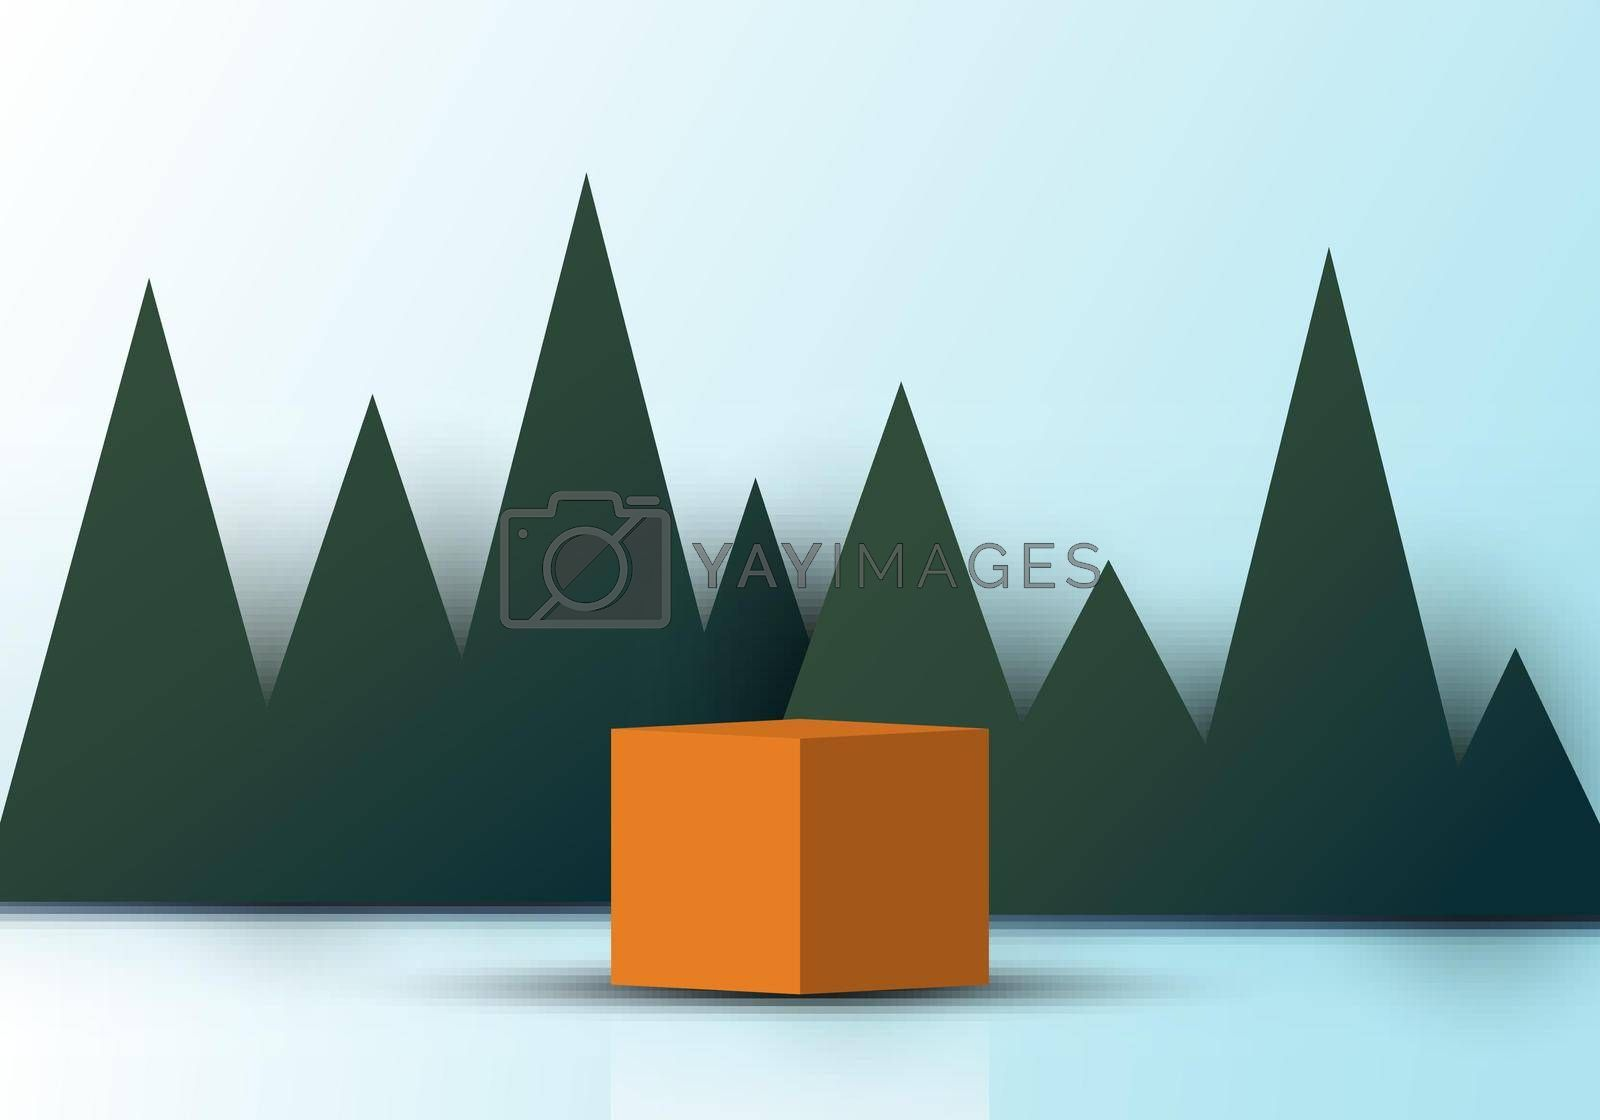 Royalty free image of 3D realistic brown cube shape with green triangles grass backdrop paper cut style on soft blue background by phochi